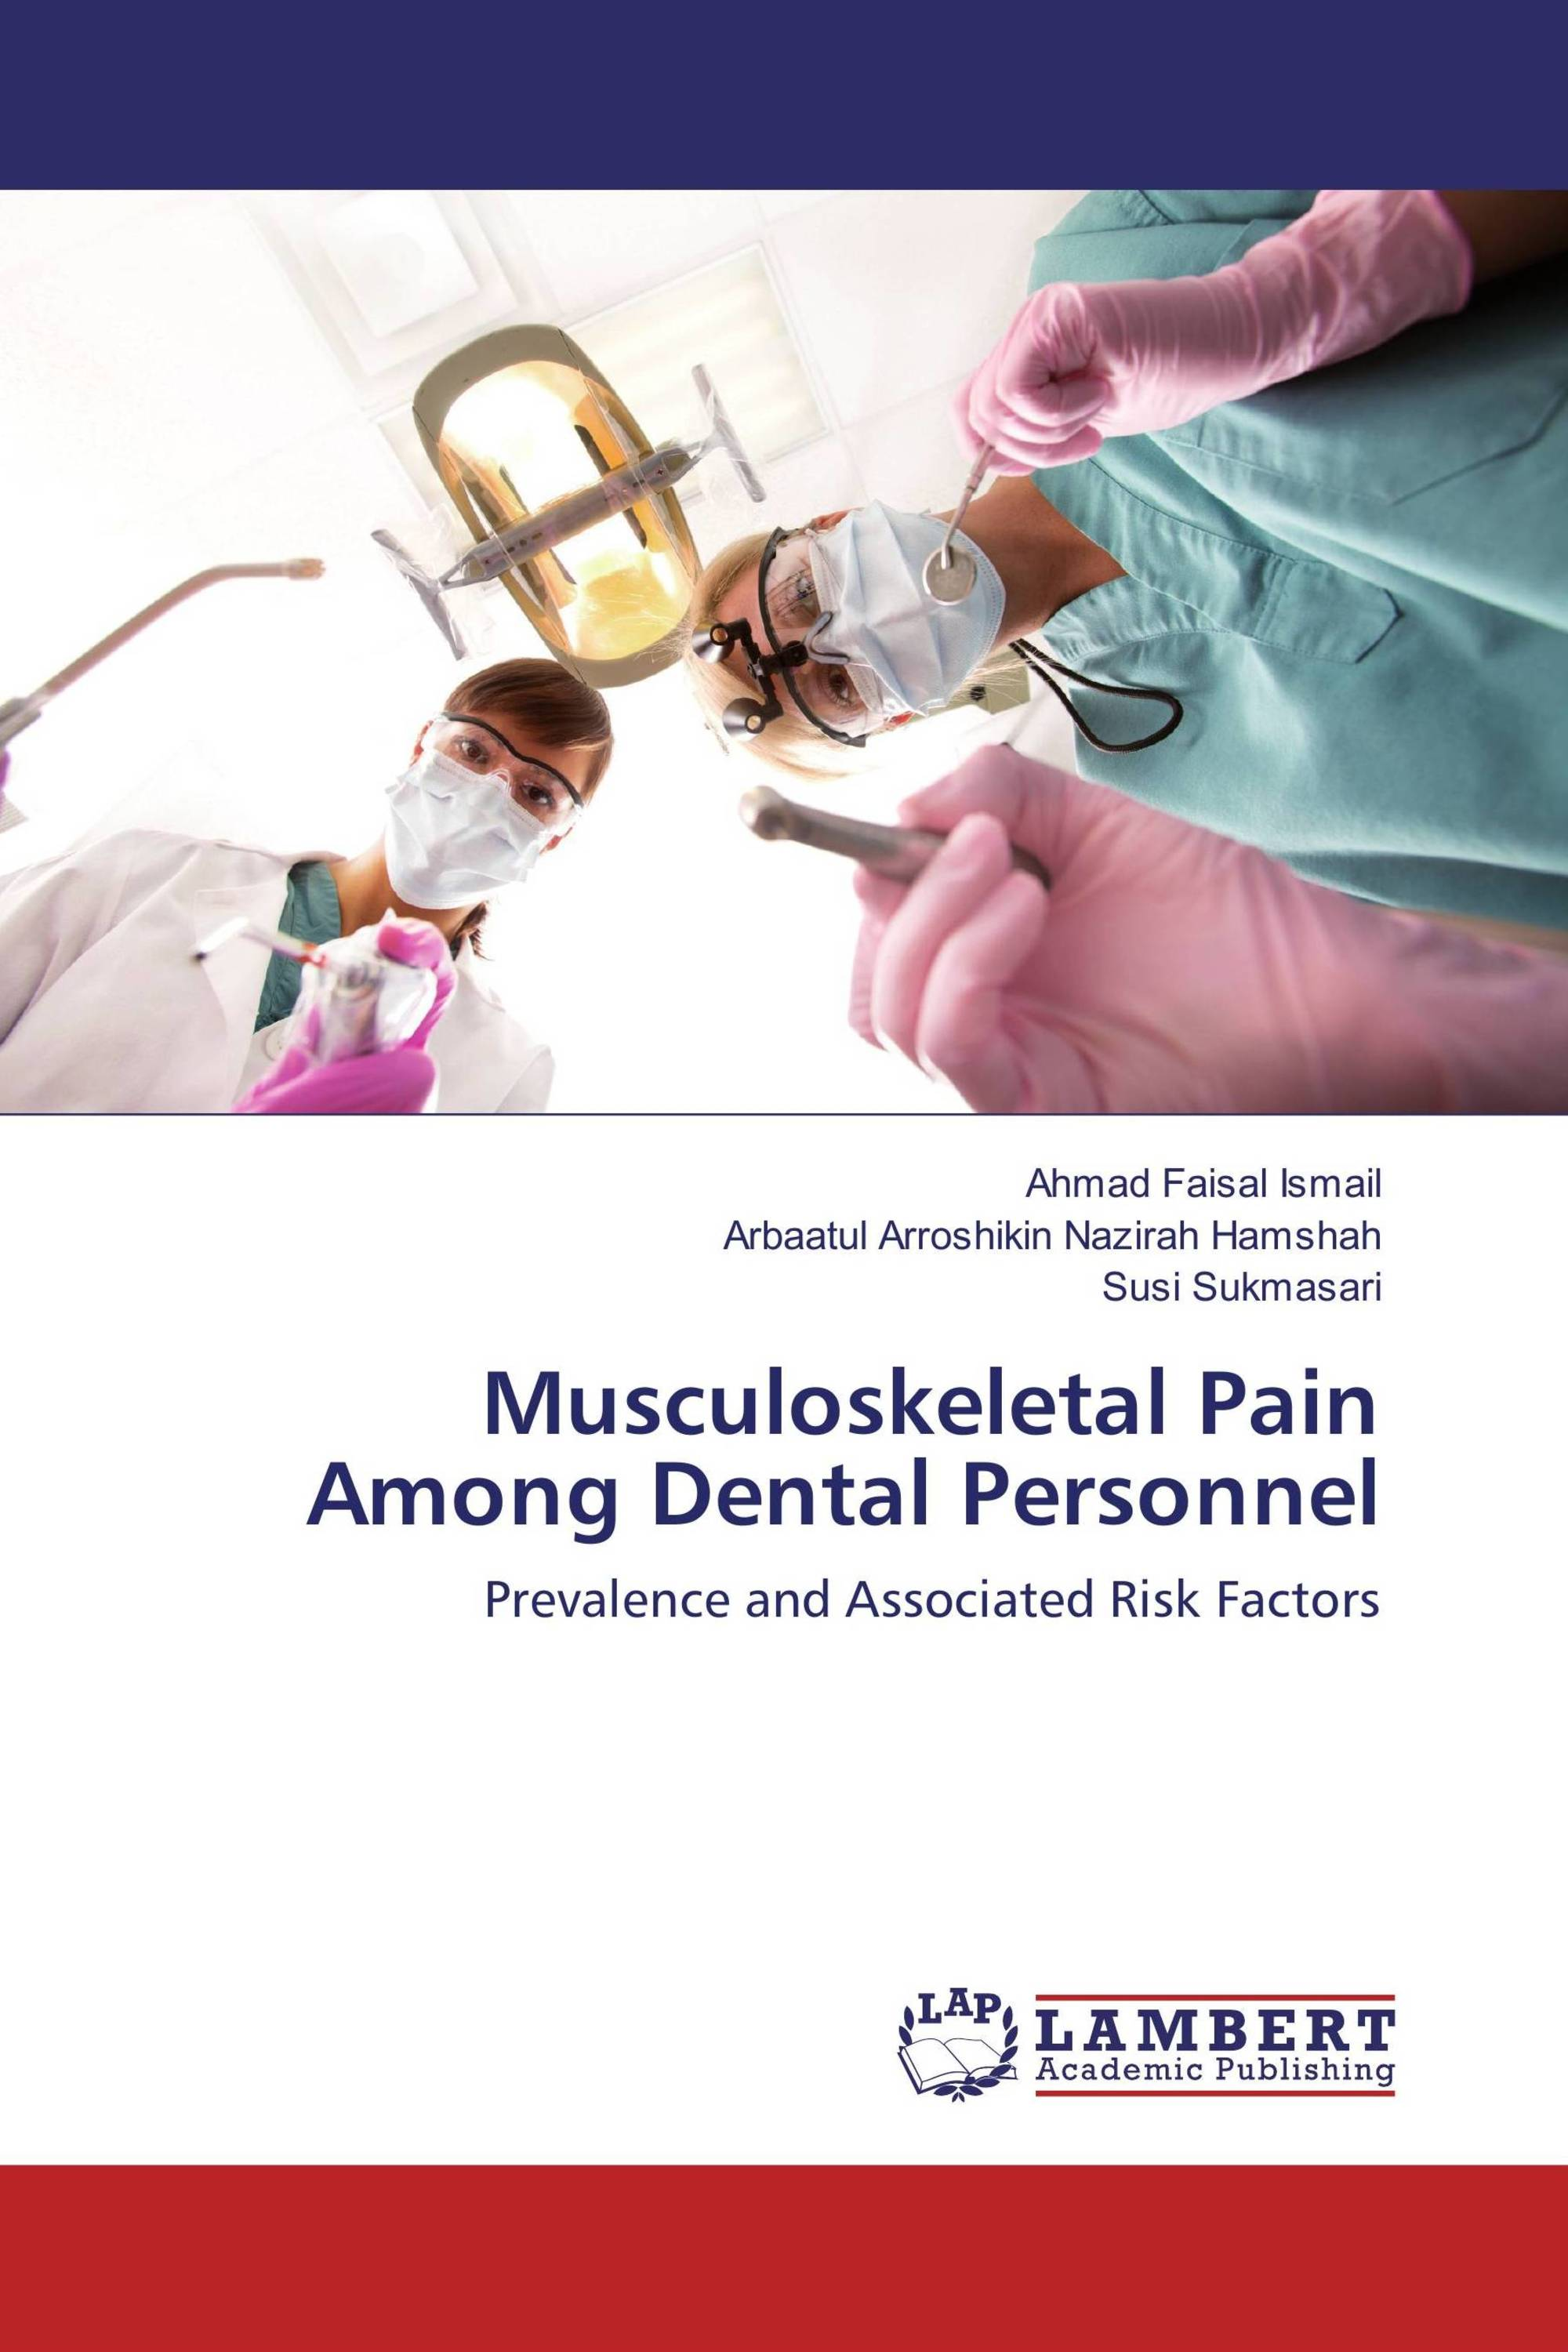 Musculoskeletal Pain Among Dental Personnel